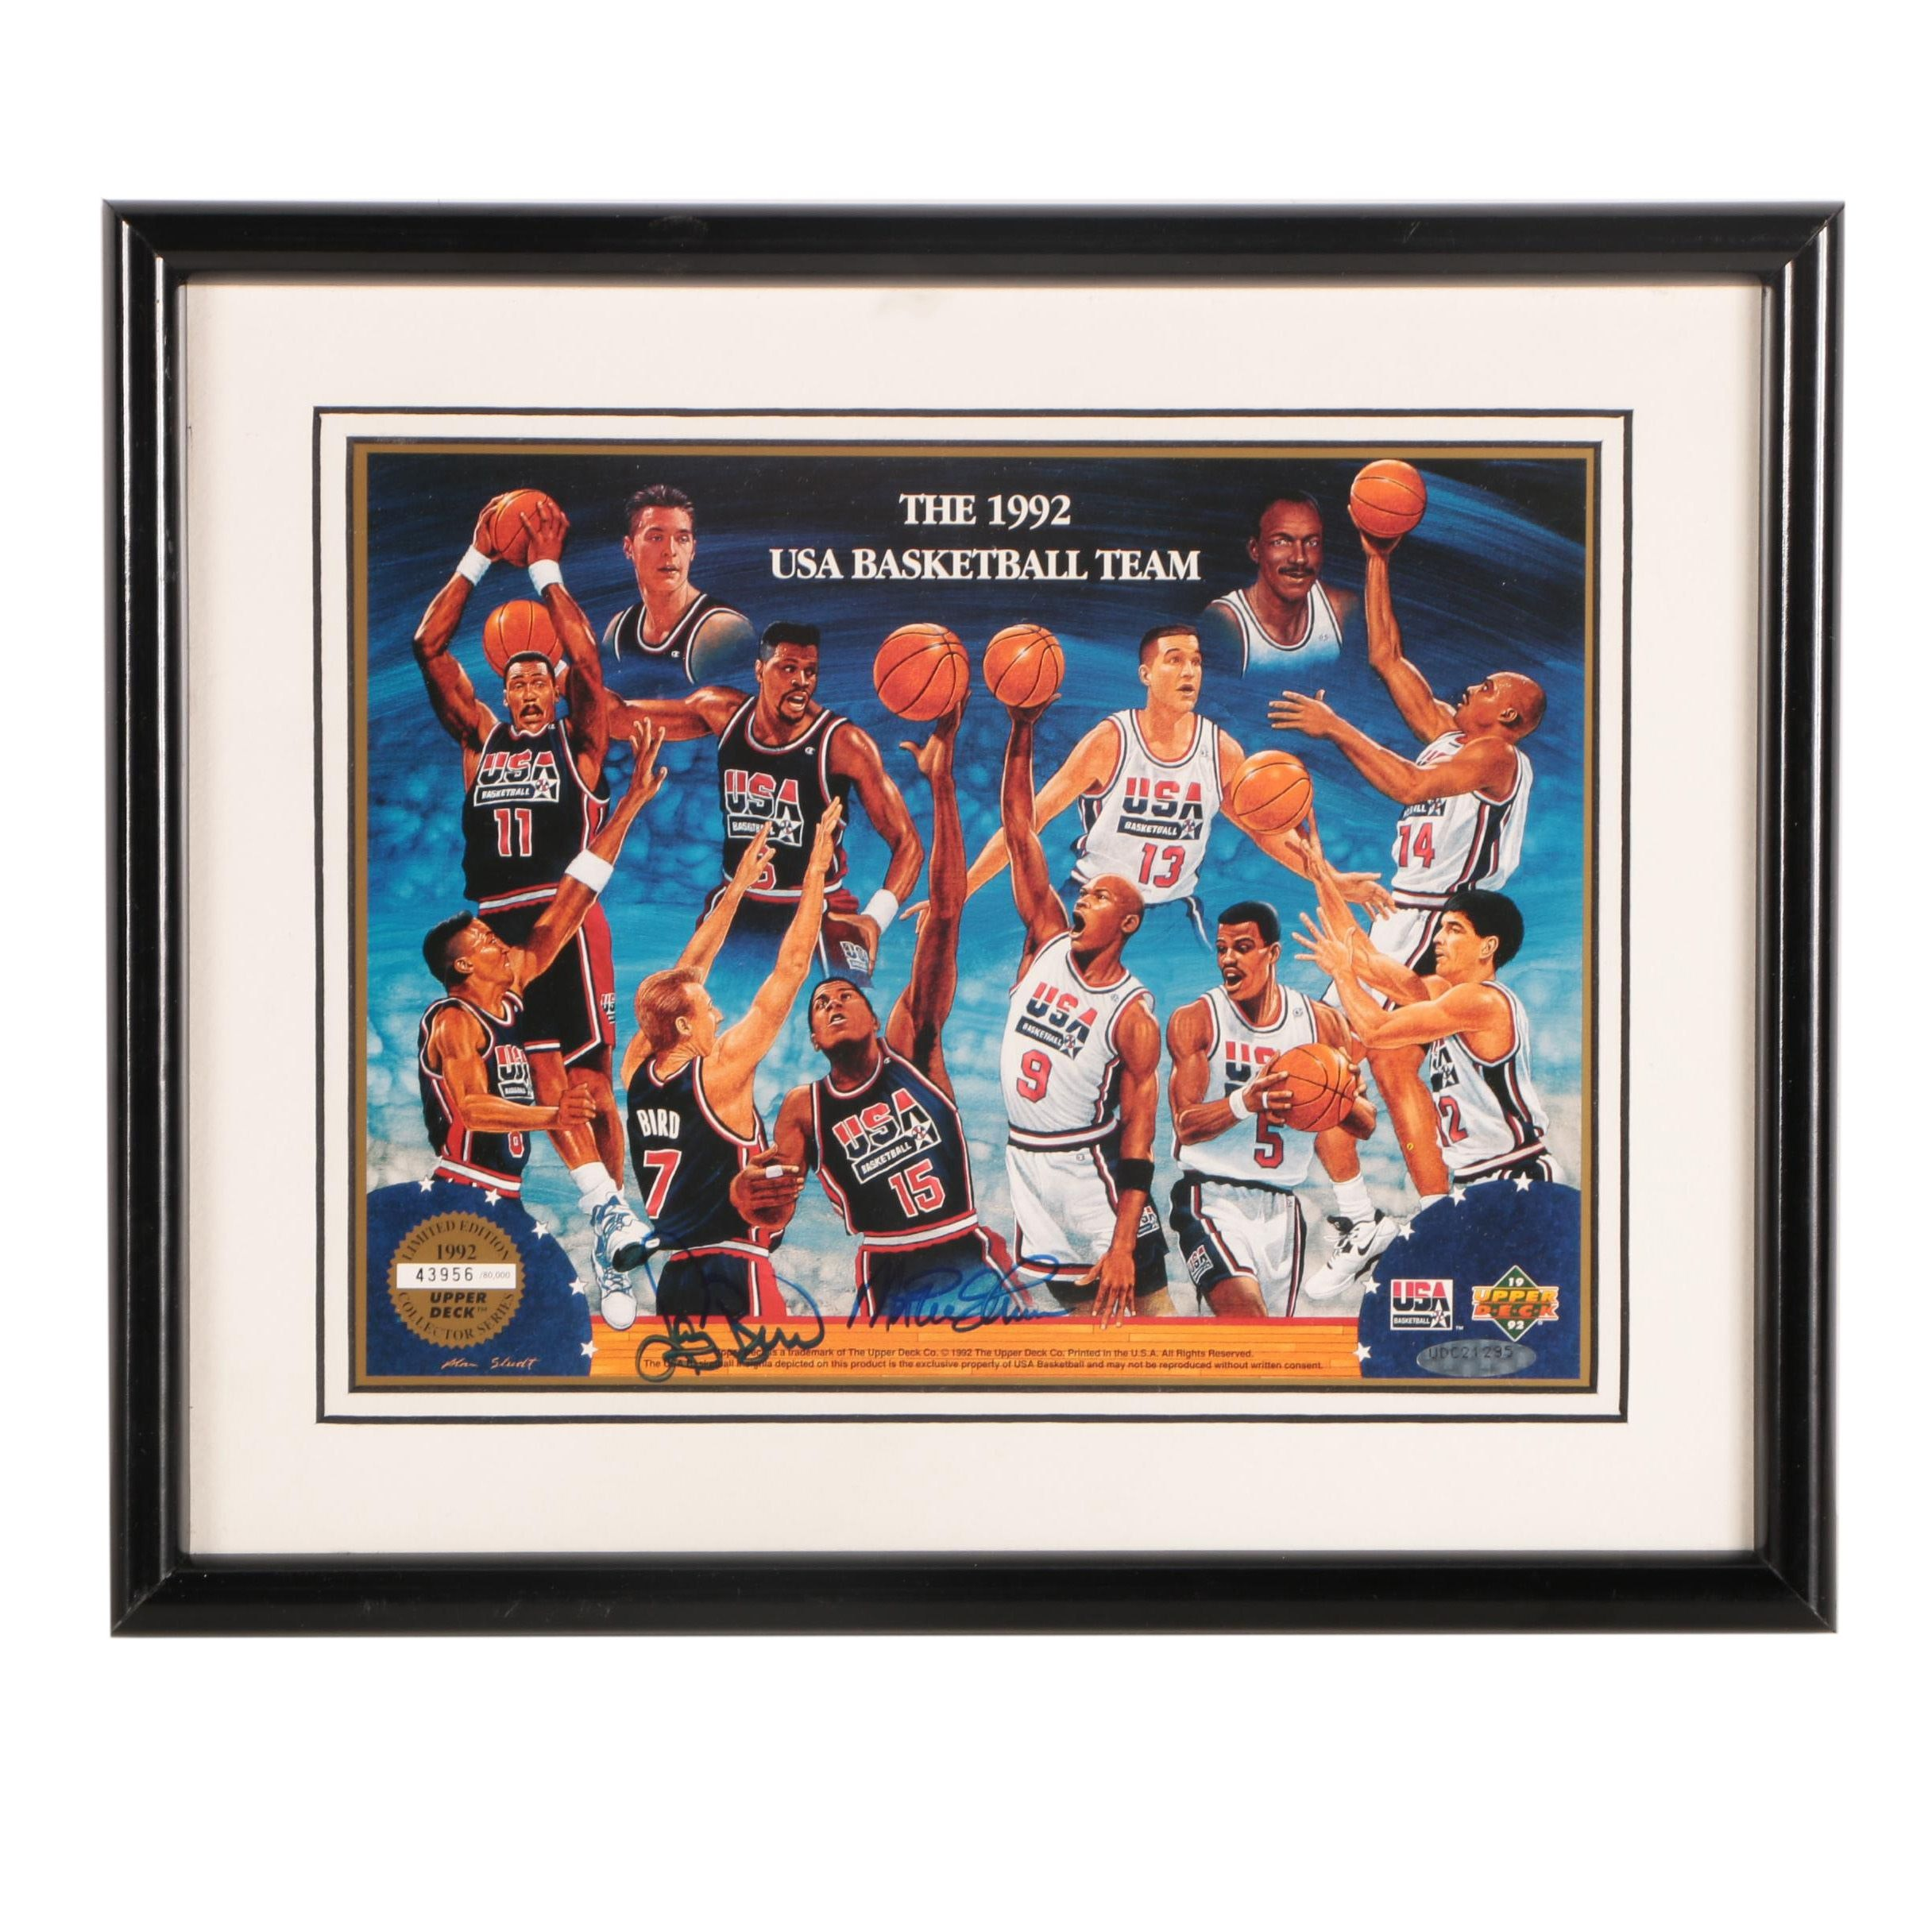 Limited Edition Autographed Print of the 1992 USA Men's Olympic Basketball Team